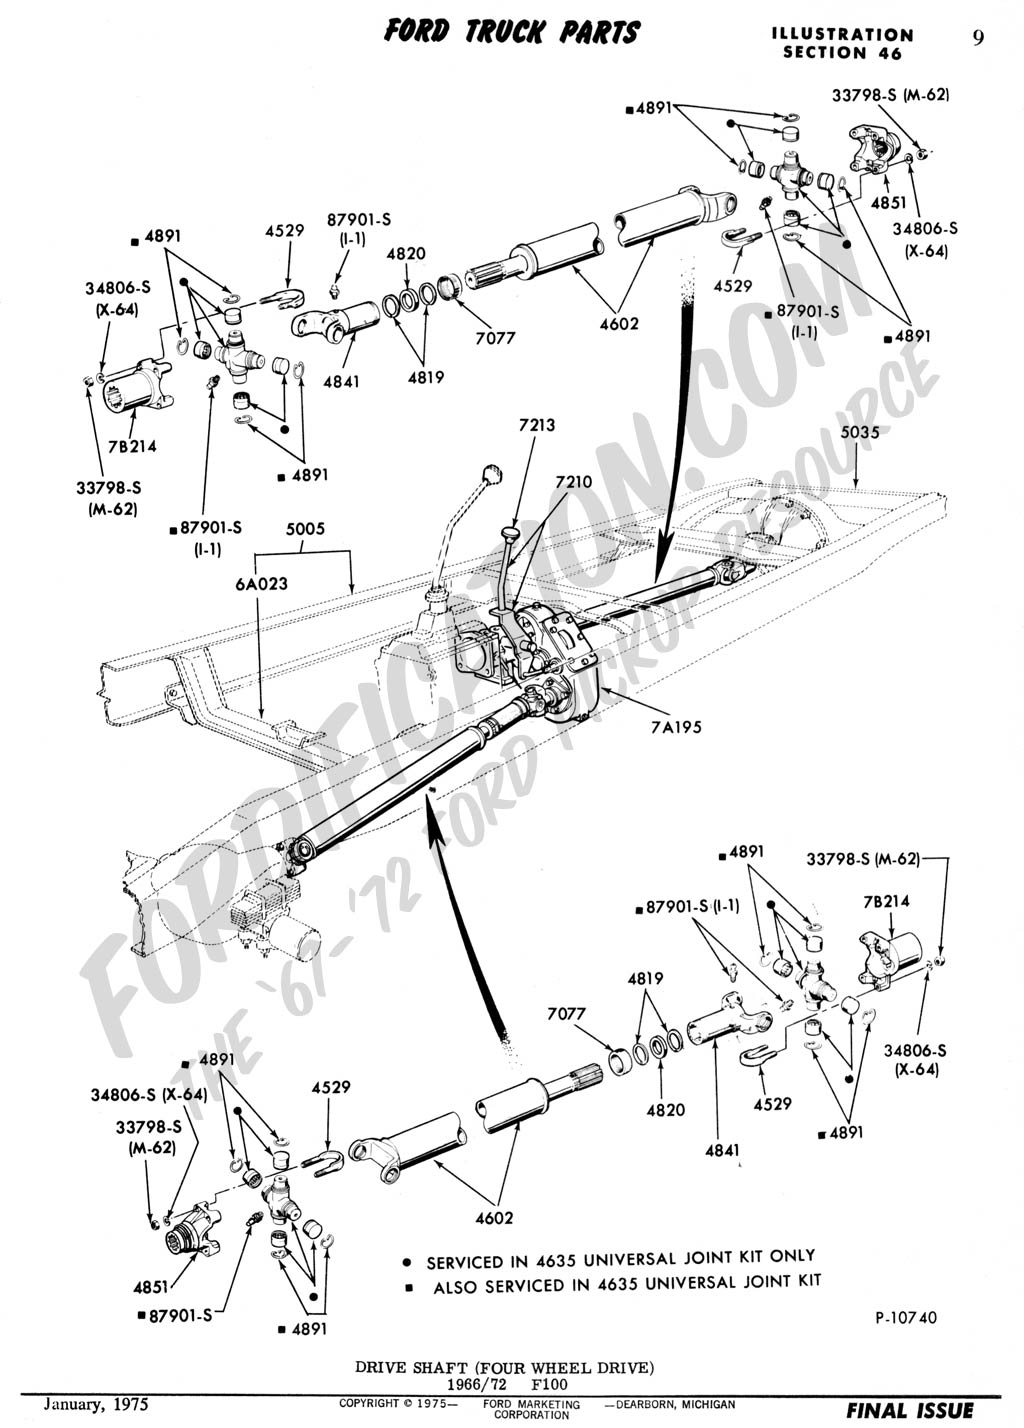 Ford truck technical drawings and schematics section a front rear axle assemblies and suspensions